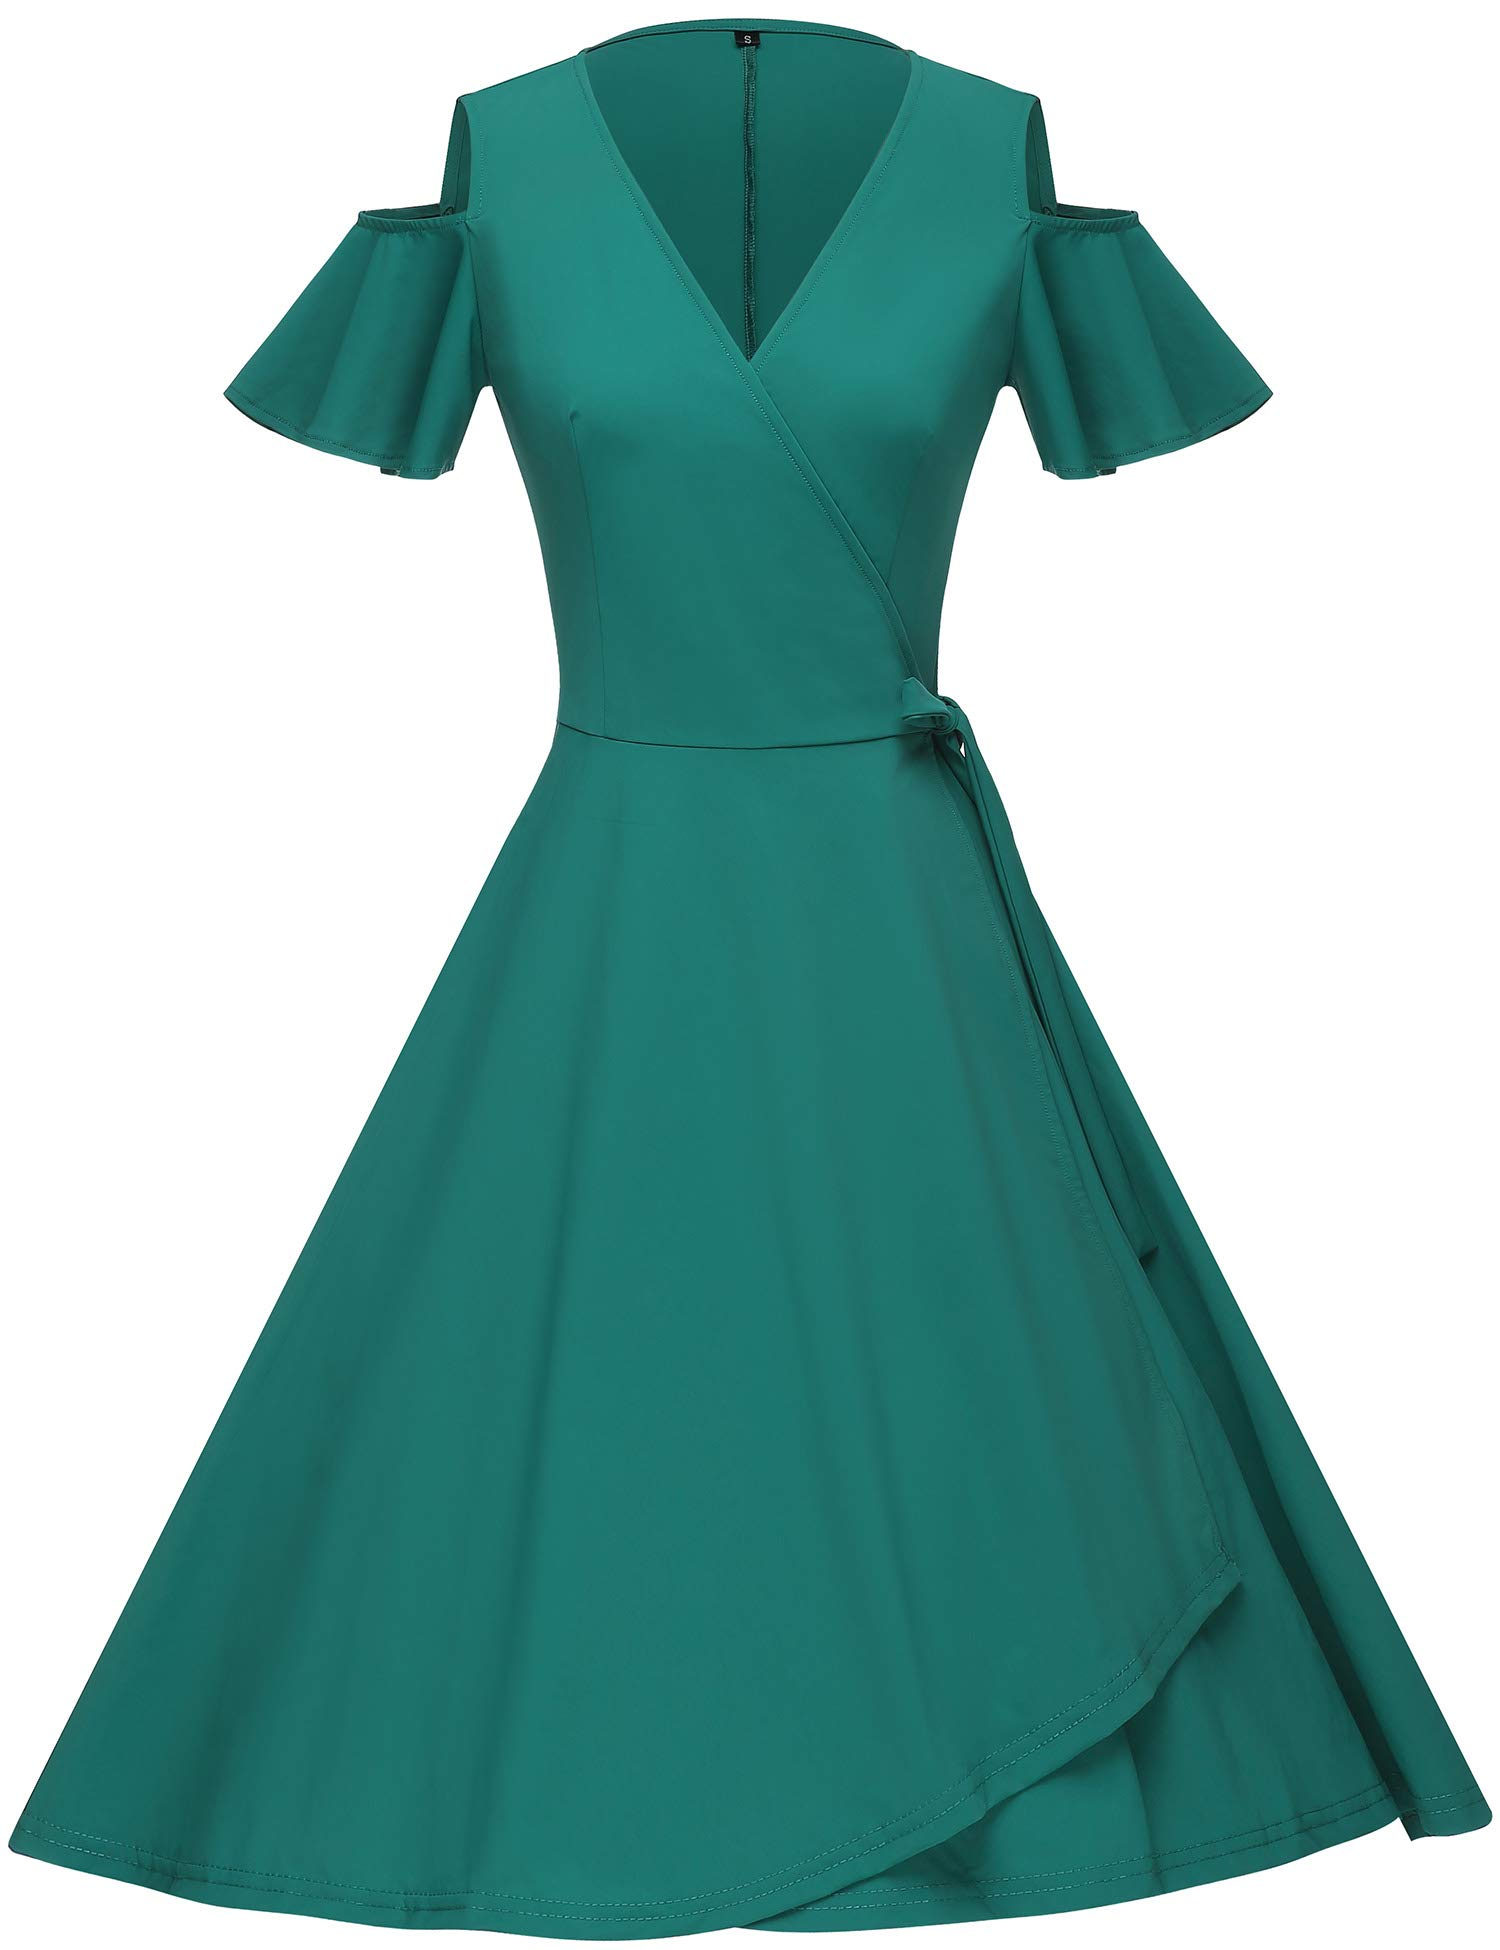 Available at Amazon: GownTown Women's 1950s Retro Style Short Sleeve Wrap Dresses